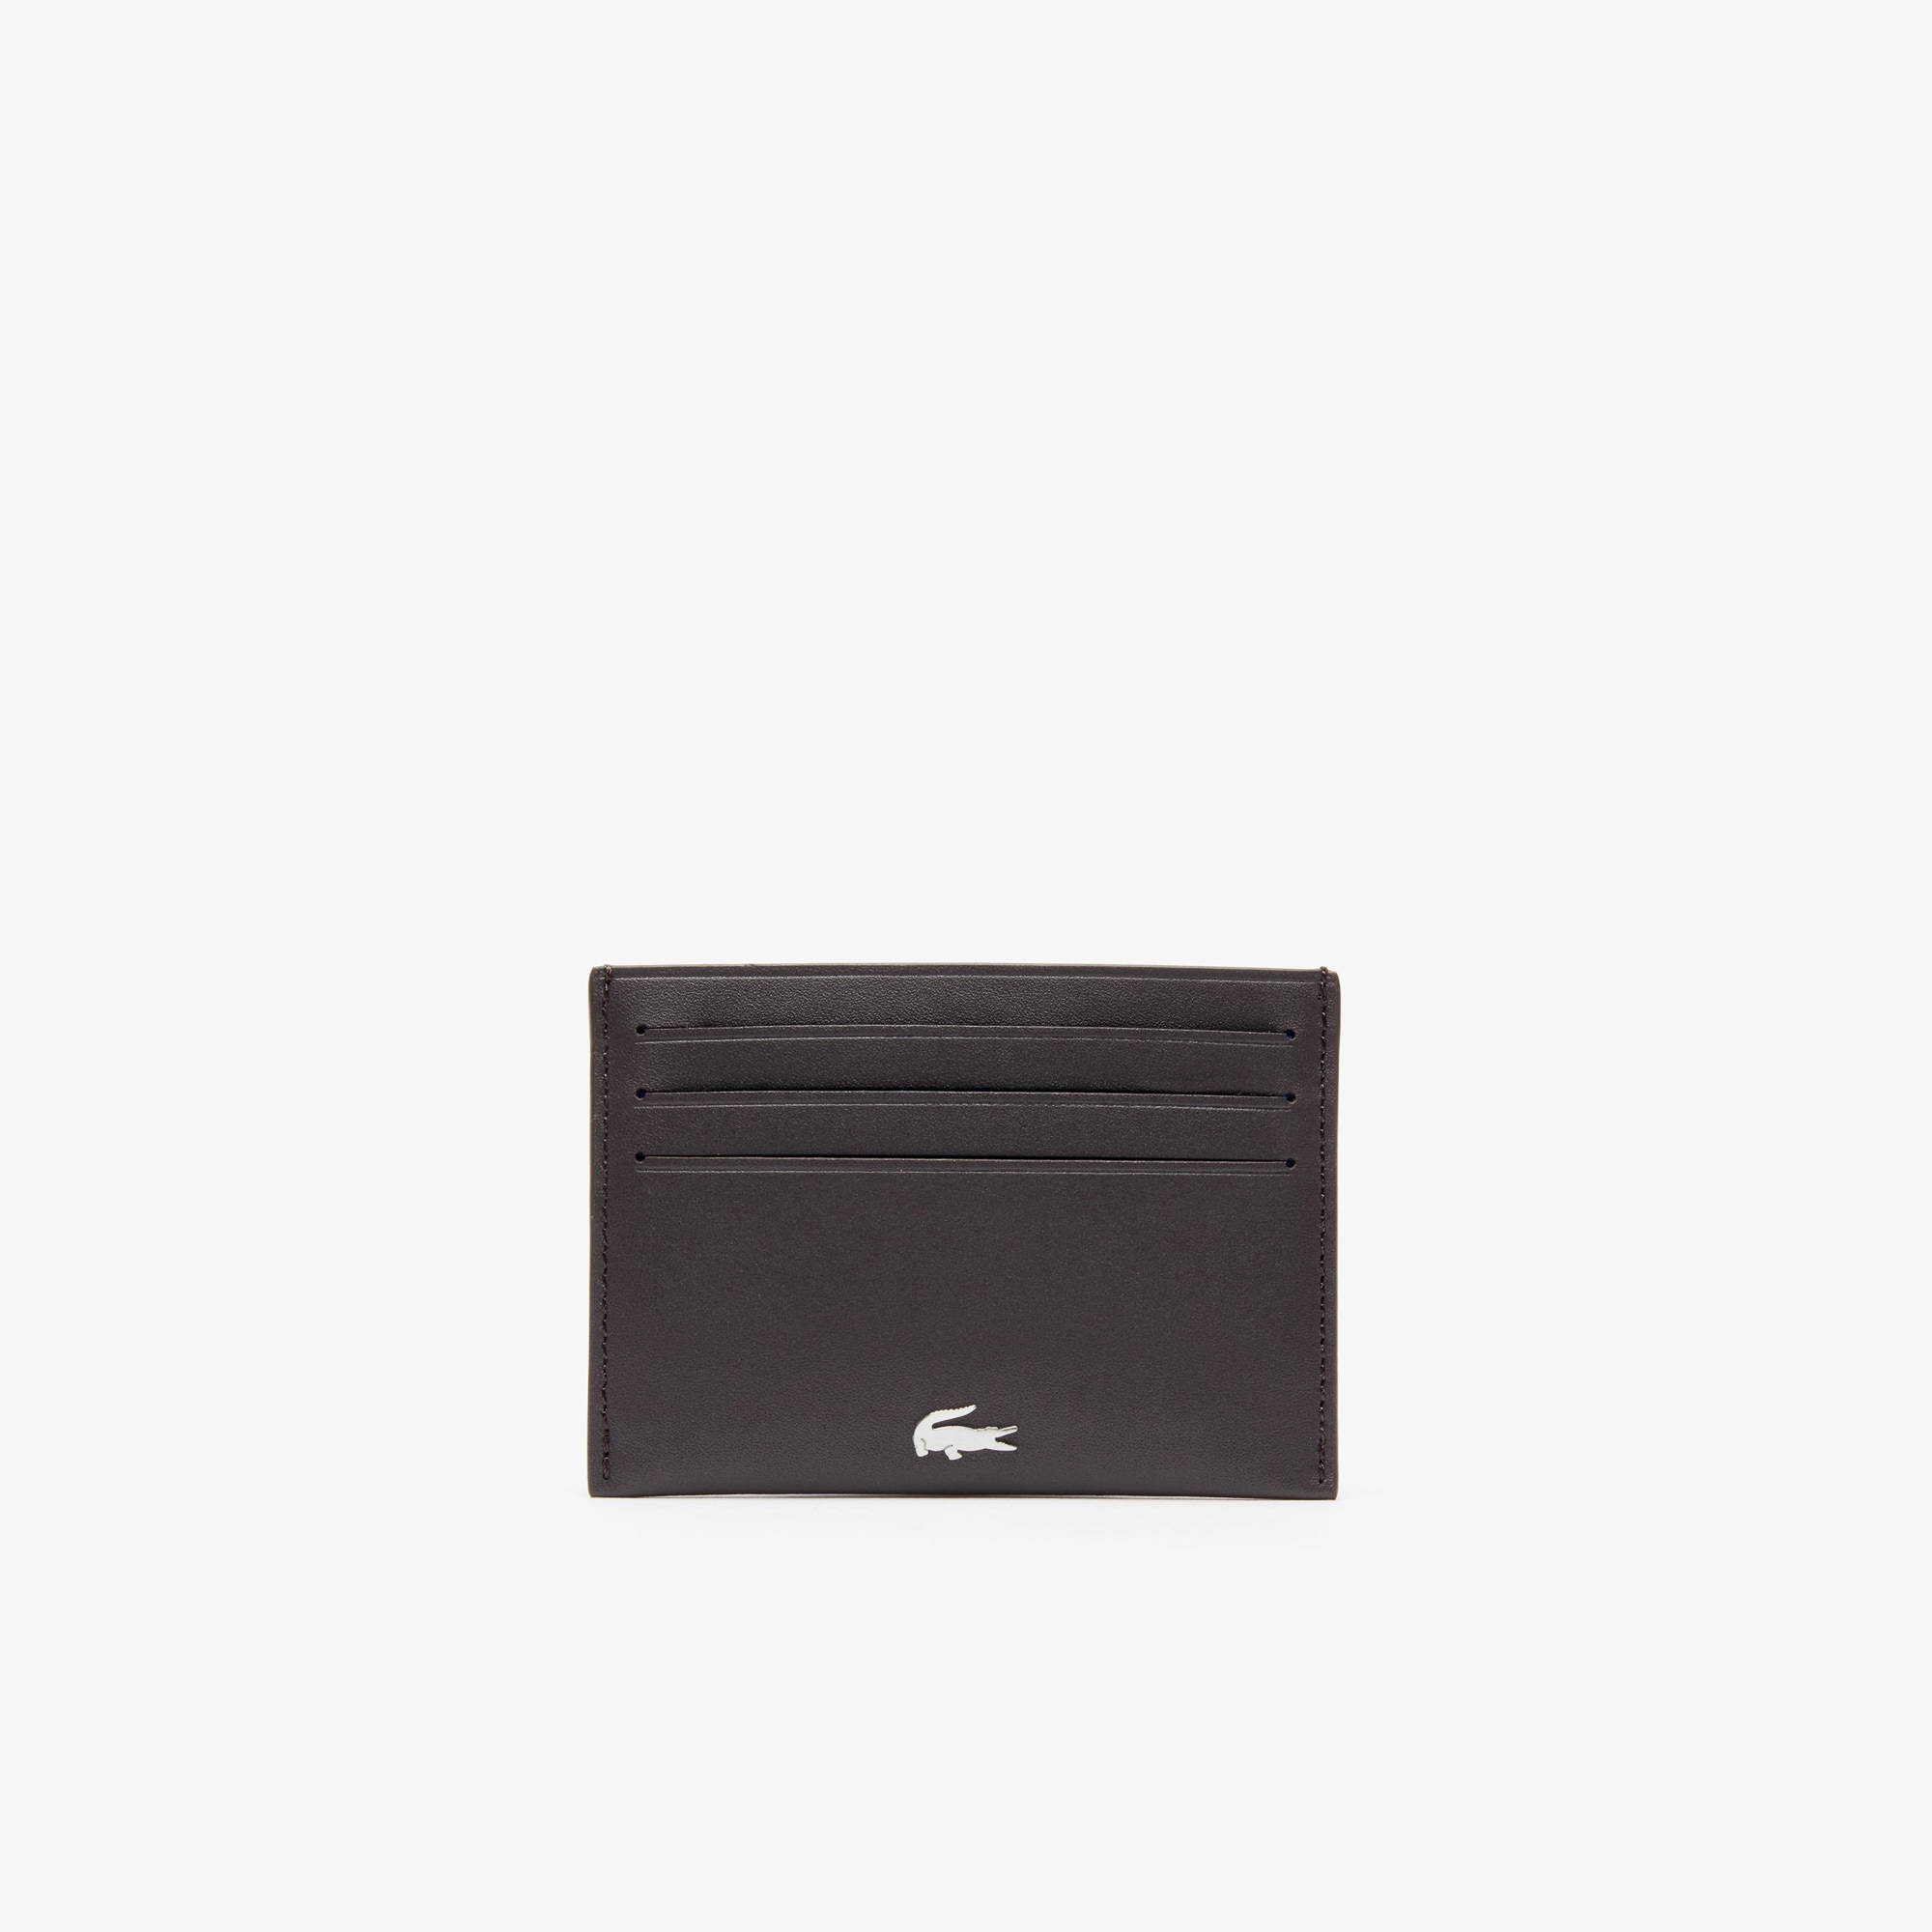 Men's FG Credit Card Holder